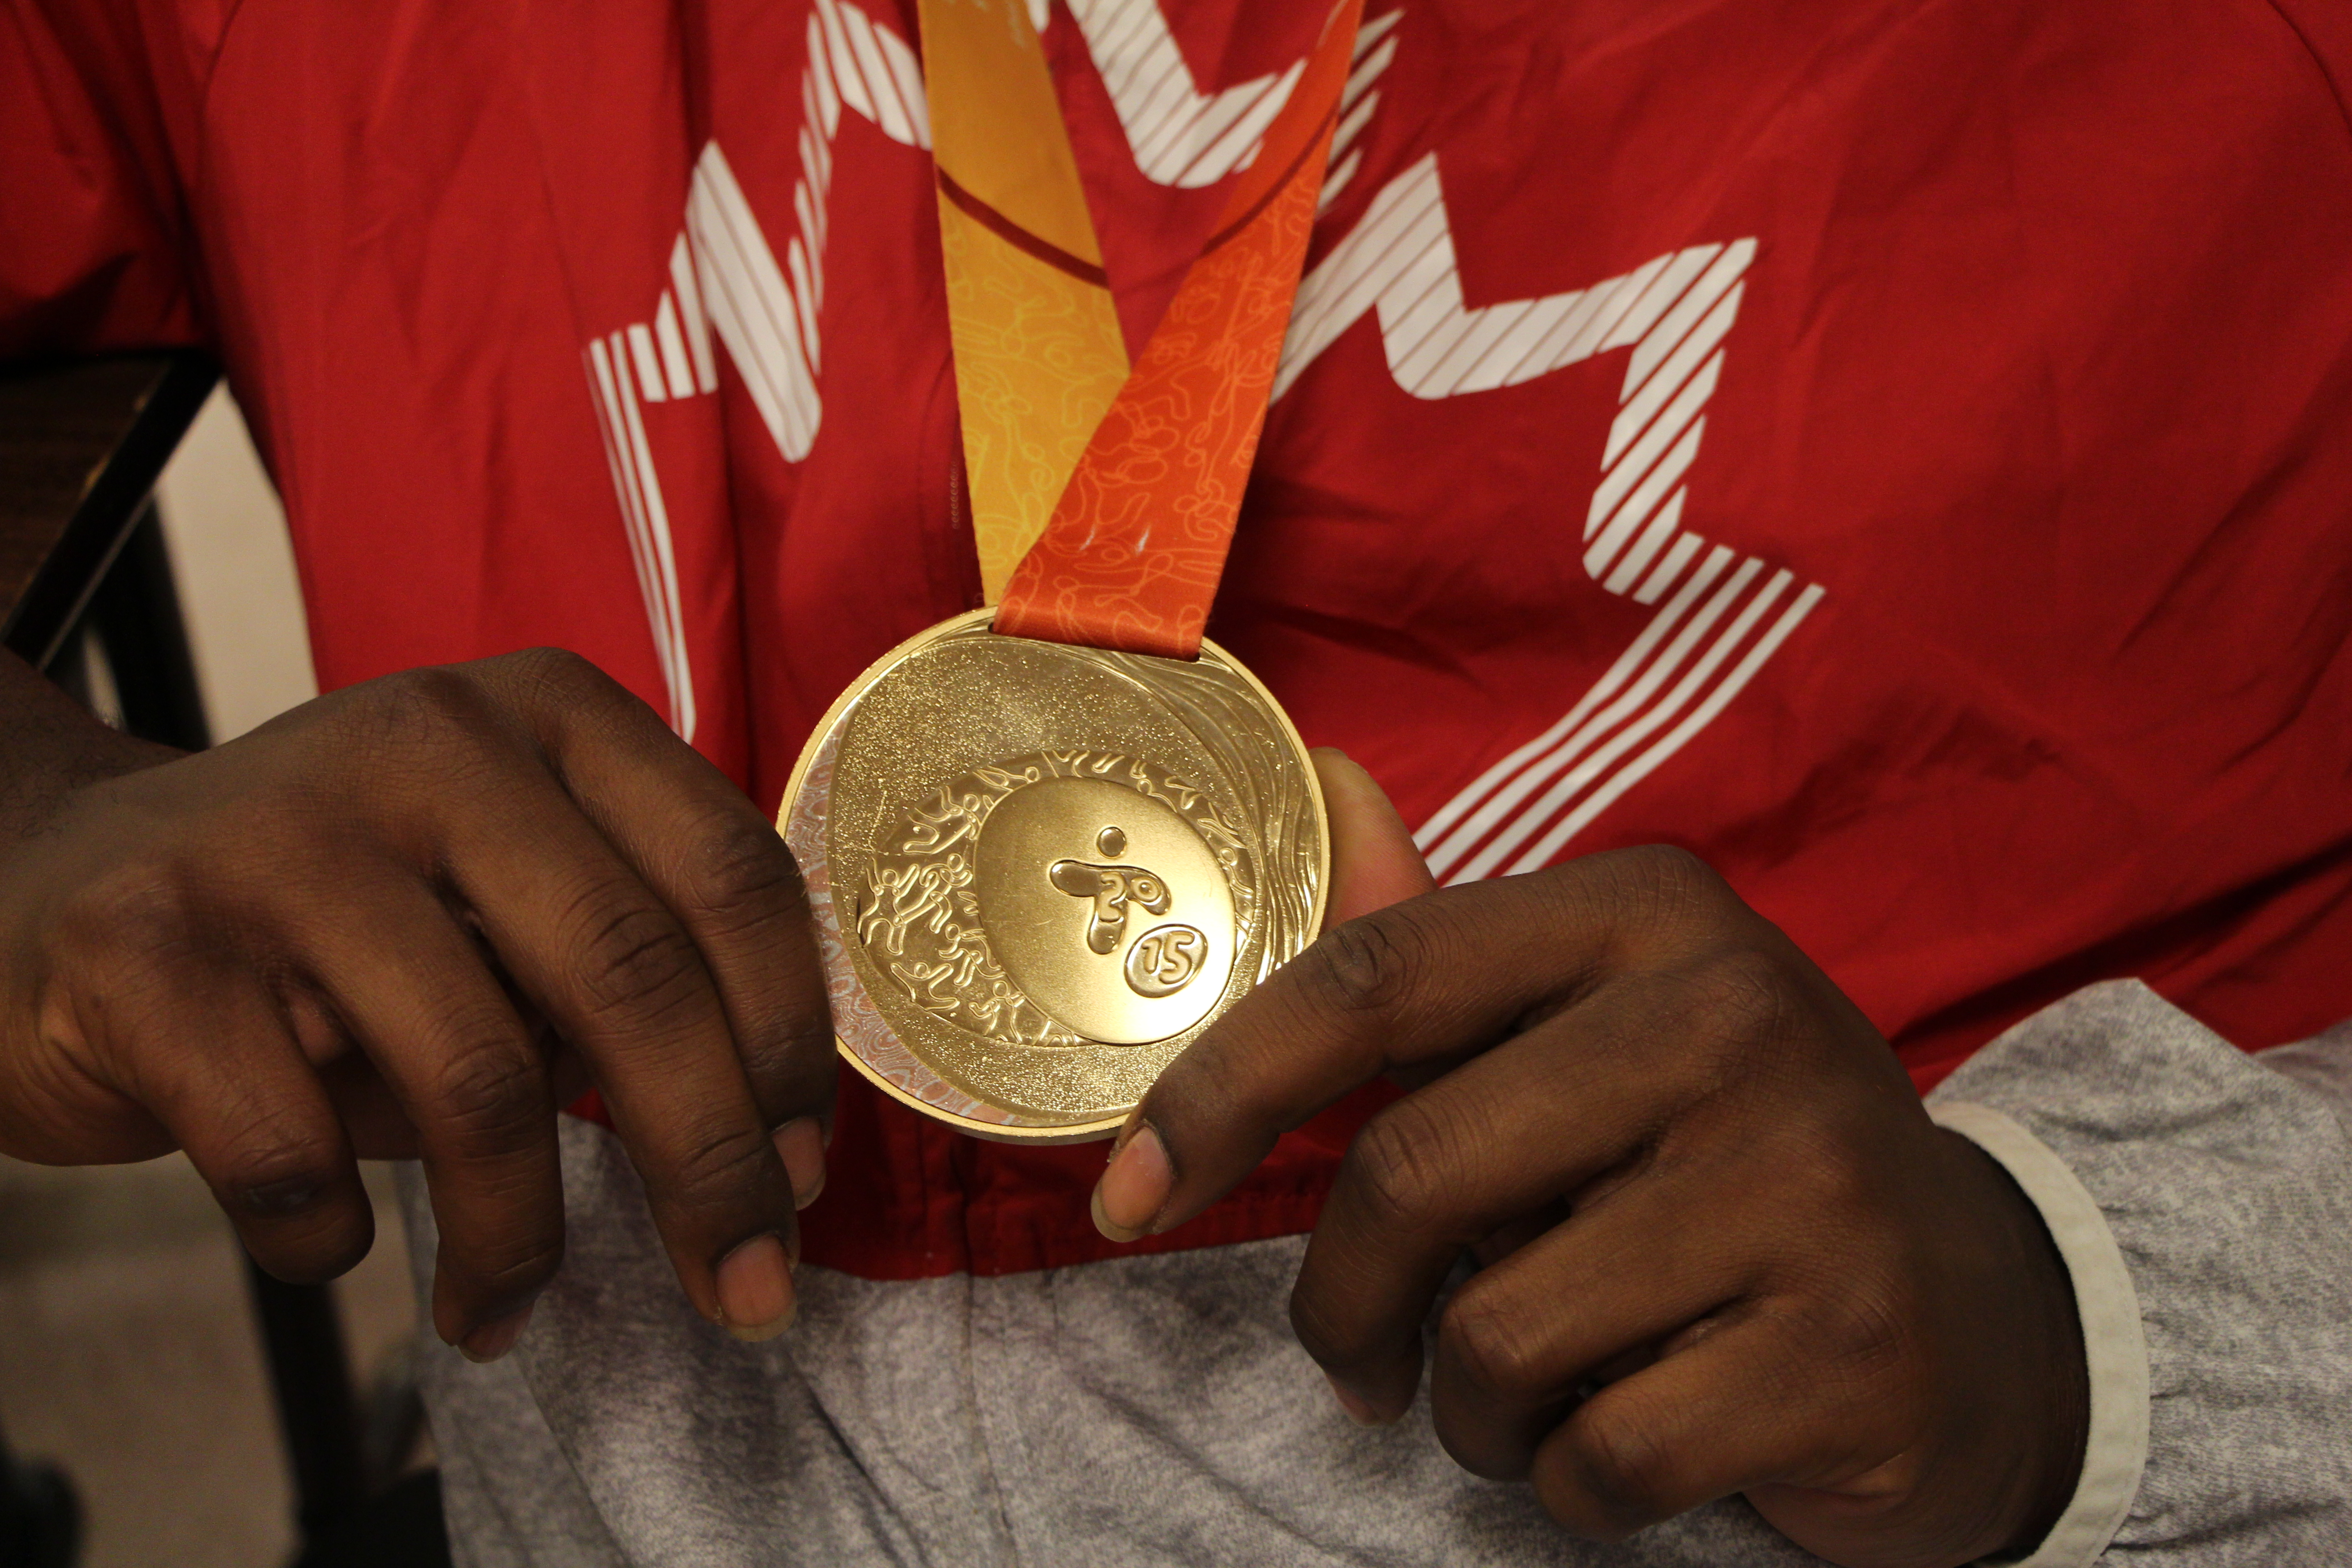 Jason showing off the gold medal that he won in F32-34 men�s shot put during the 2015 Parapan Am Games.